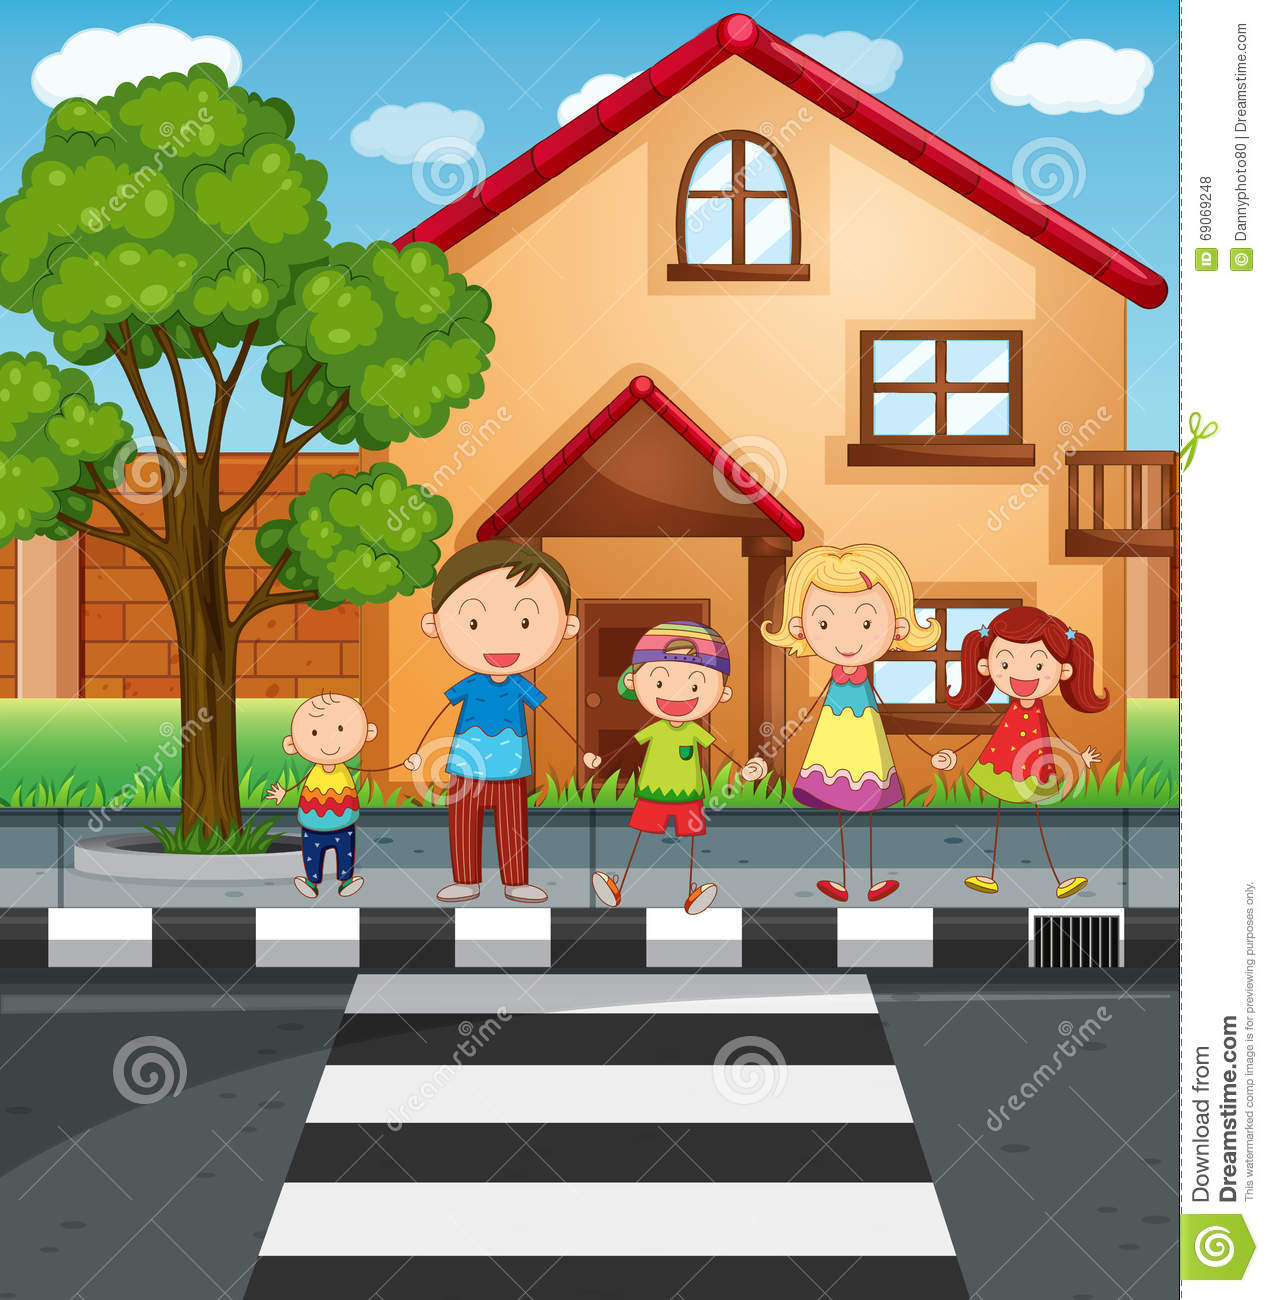 Road Crossing Clipart Family Holding Hands While Crossing The Road Stock Vector